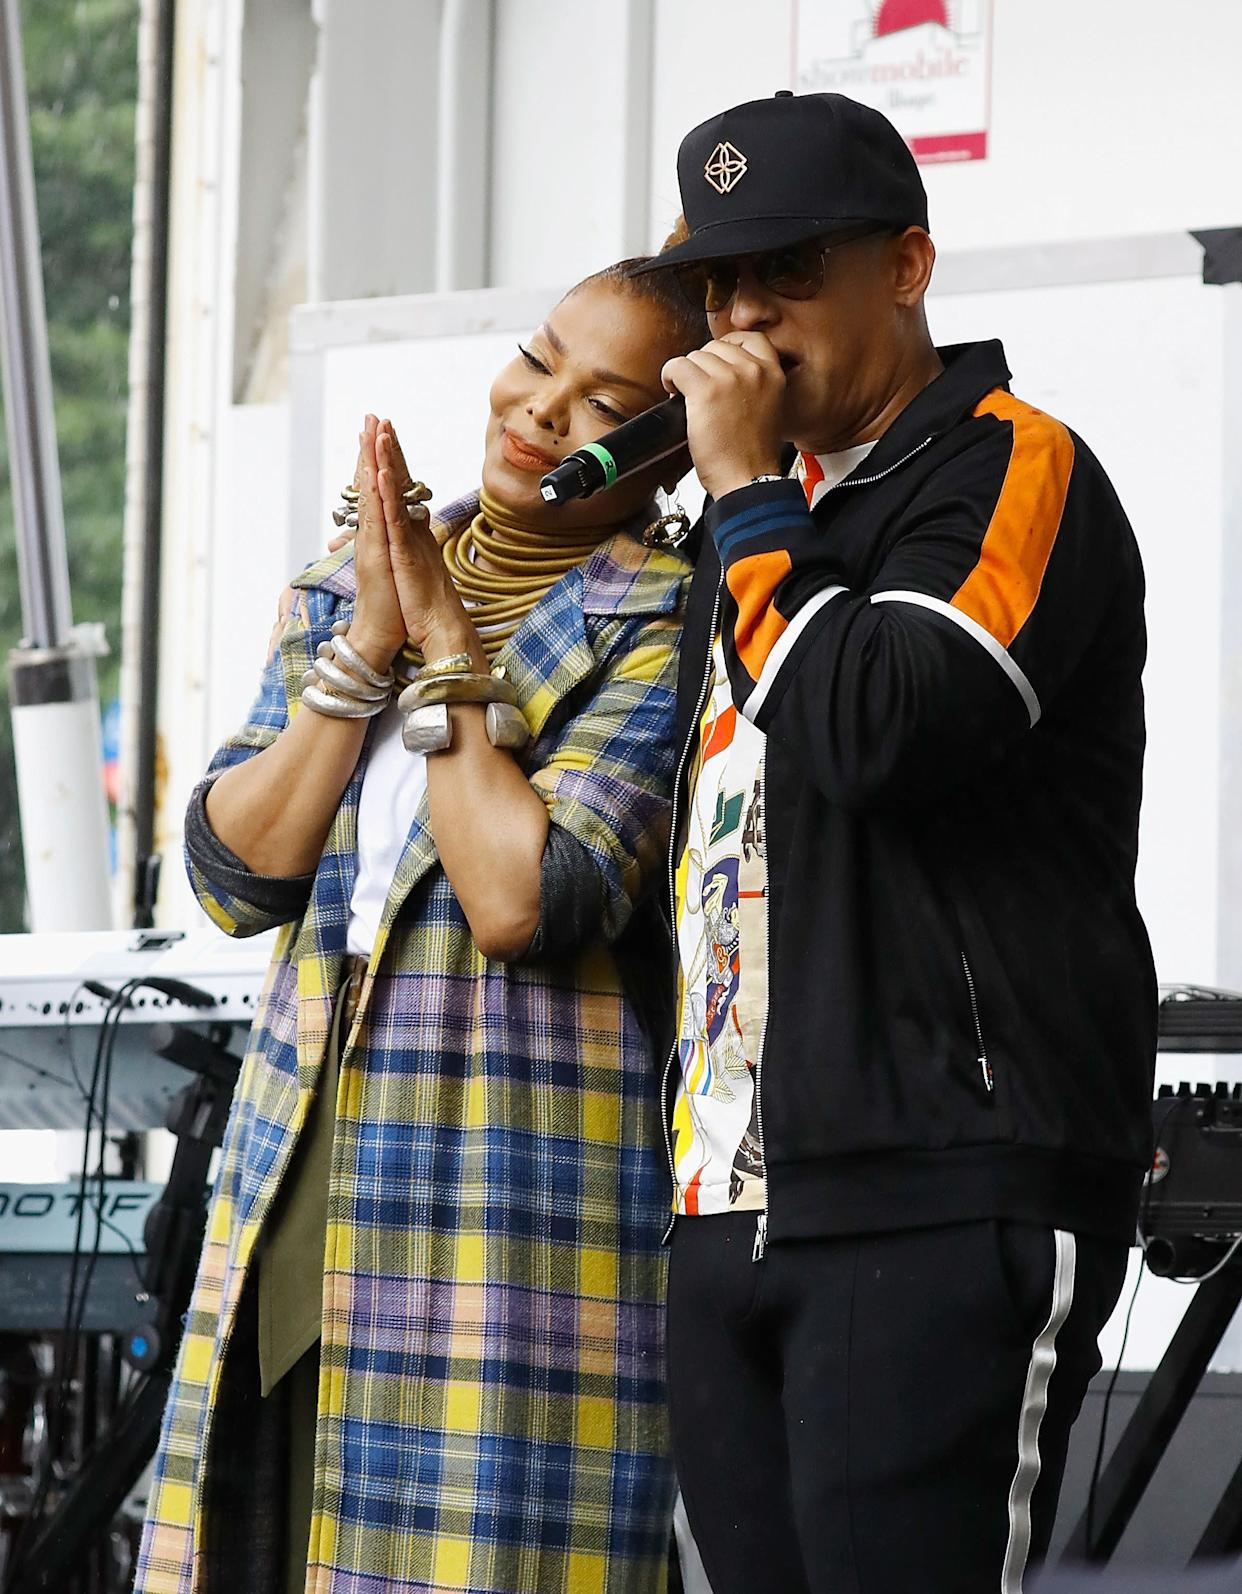 NEW YORK, NY - AUGUST 18: Janet Jackson and Daddy Yankee celebrate 'Made For Now' at the 44th annual Harlem Week on August 18, 2018 in New York City. (Photo by John Lamparski/WireImage)